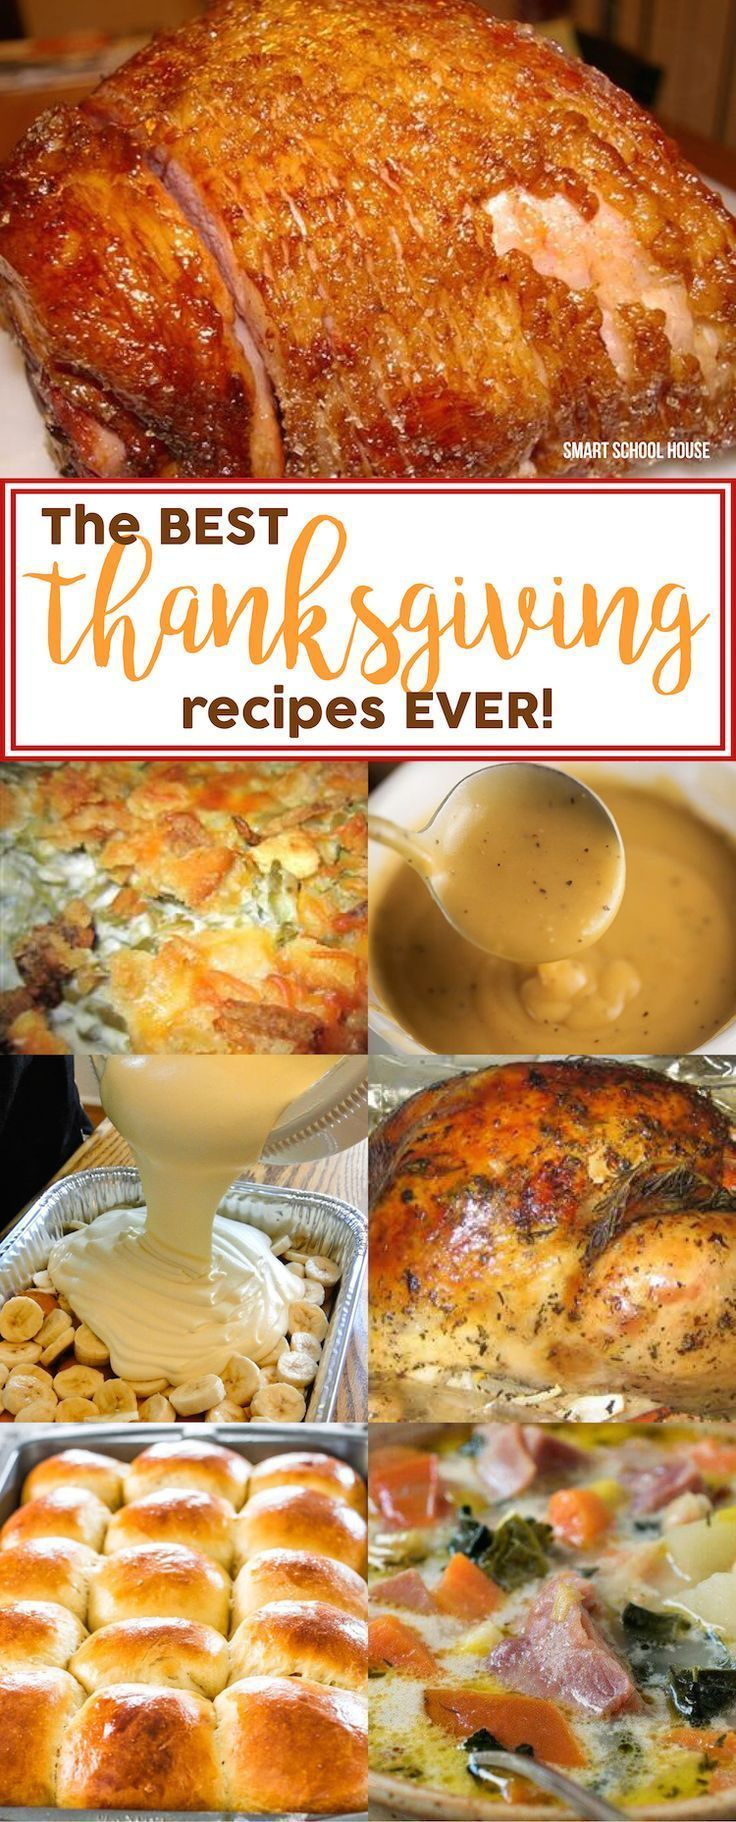 The Best Thanksgiving Recipes Ever Best Thanksgiving Recipes Thanksgiving Recipes Thanksgiving Dishes